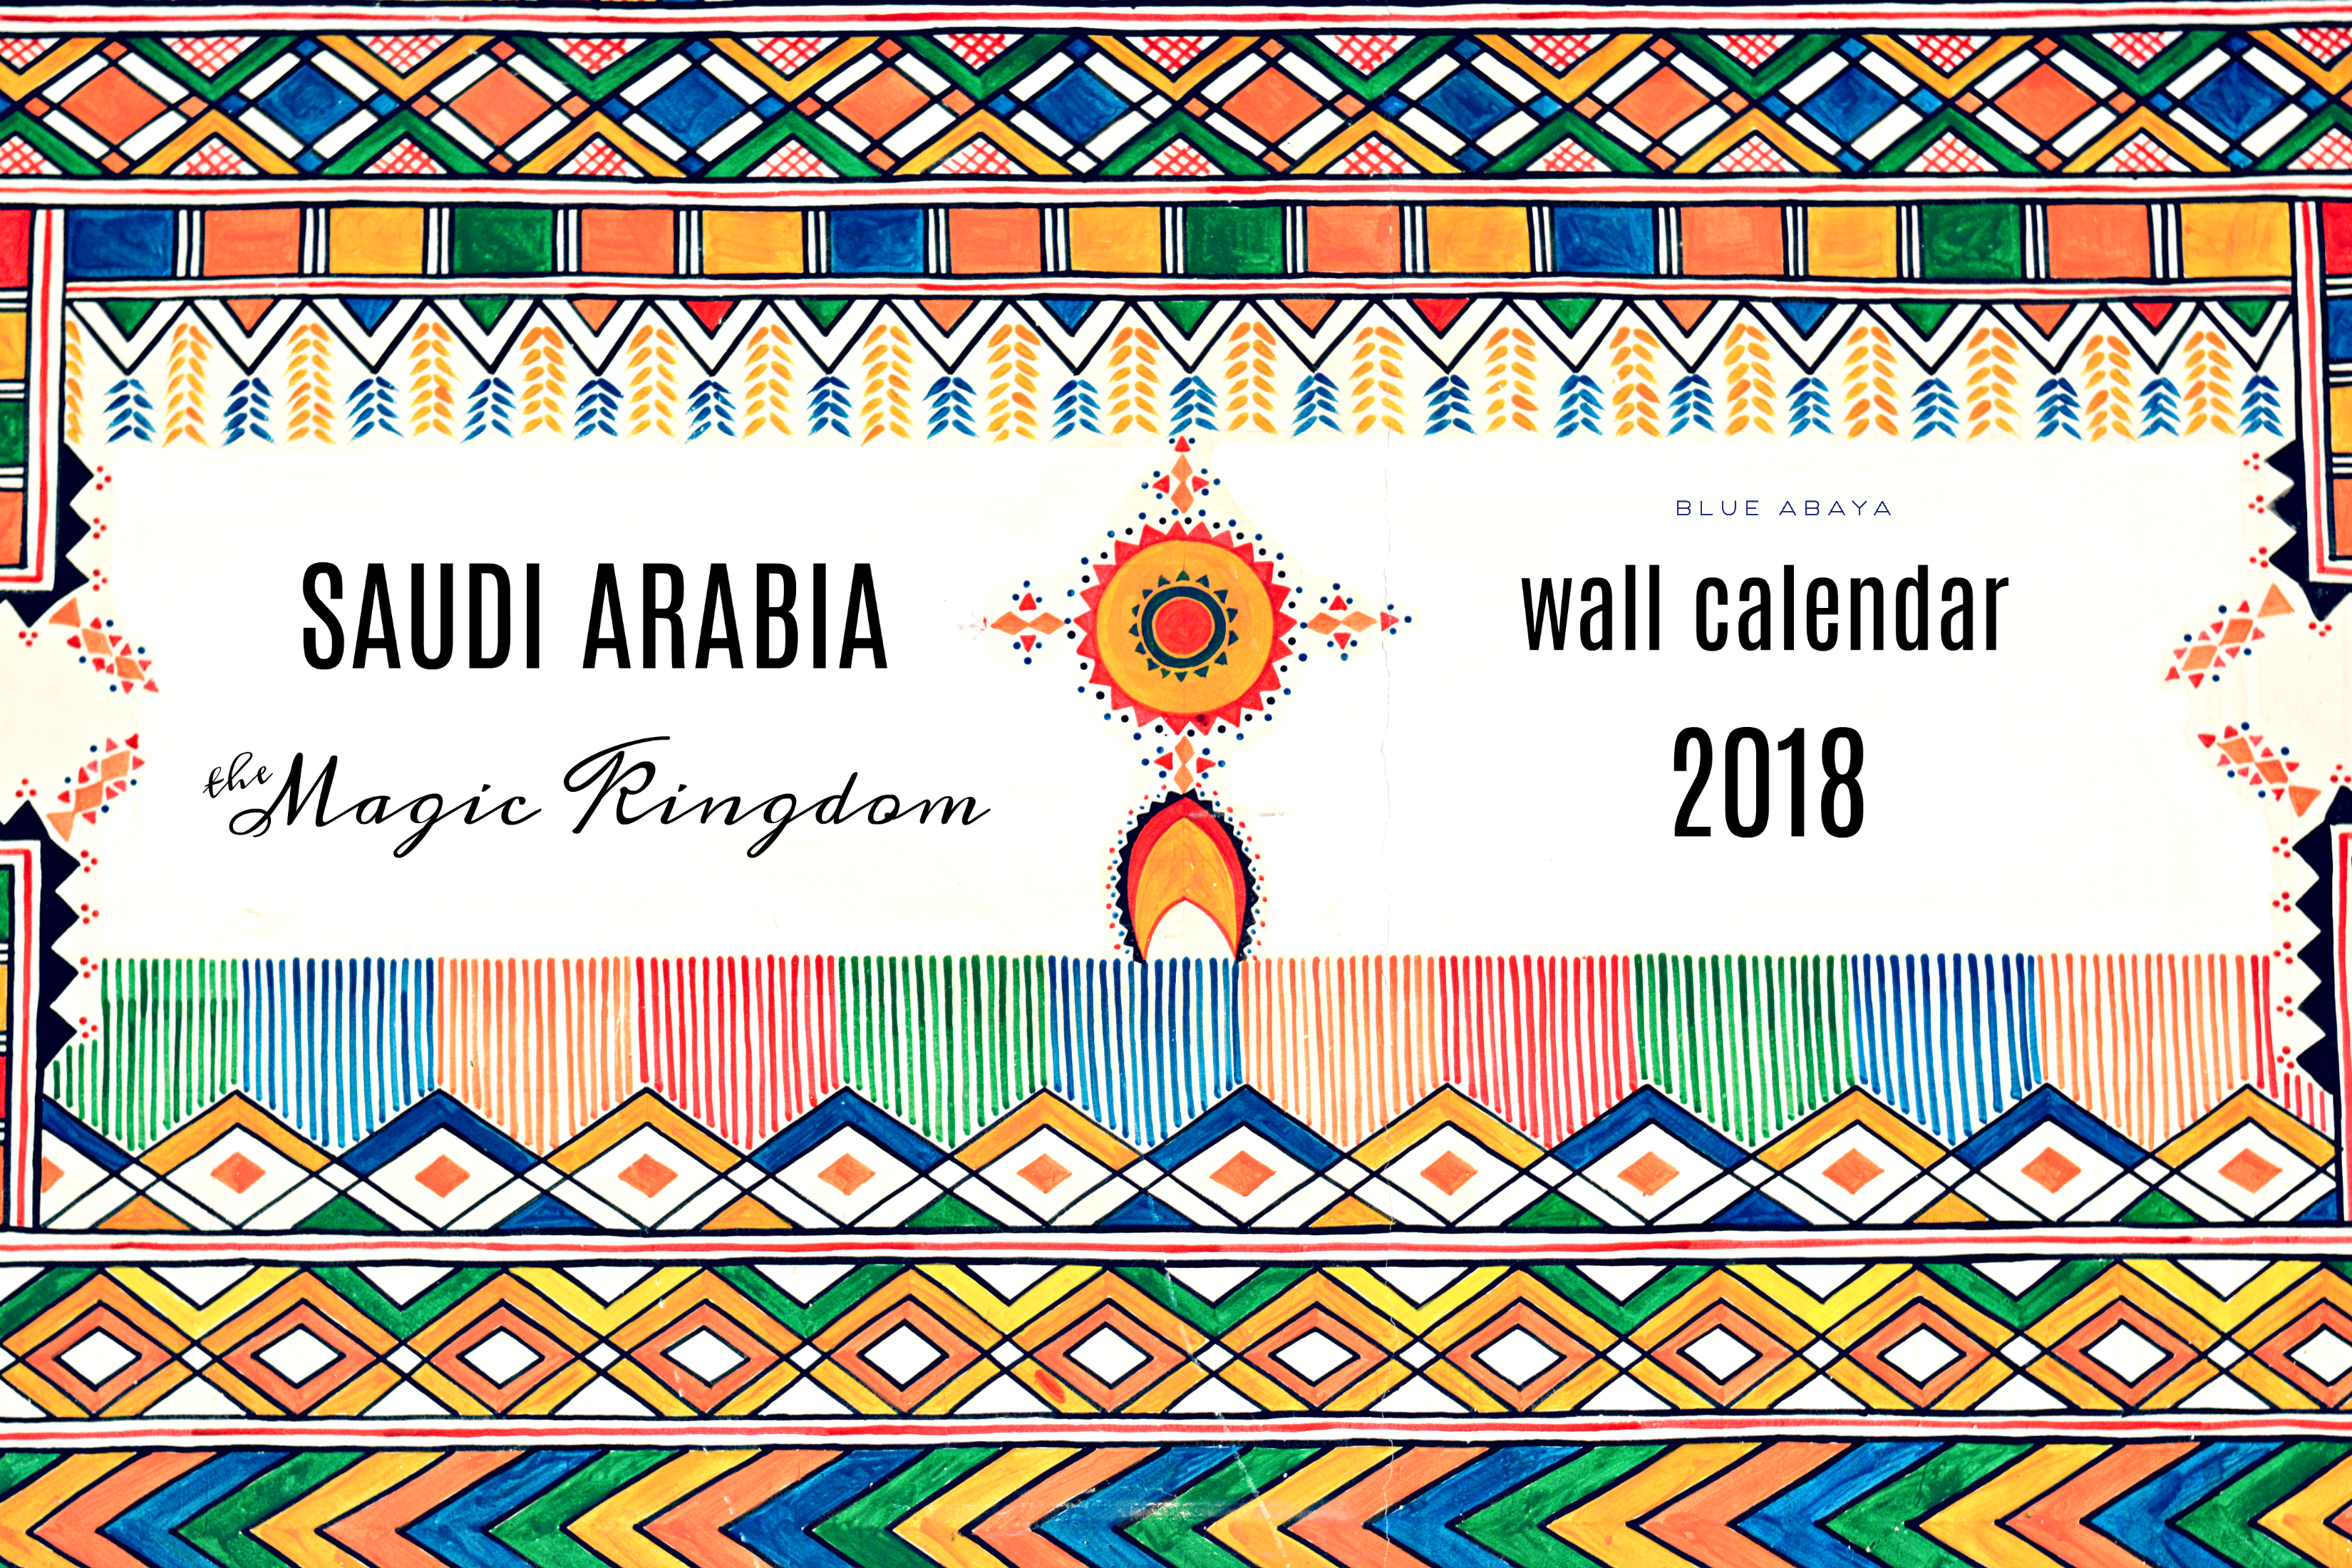 some of you may already know that ive been making saudi souvenirs and wall calendars from images of my travels around saudi arabia for several years now